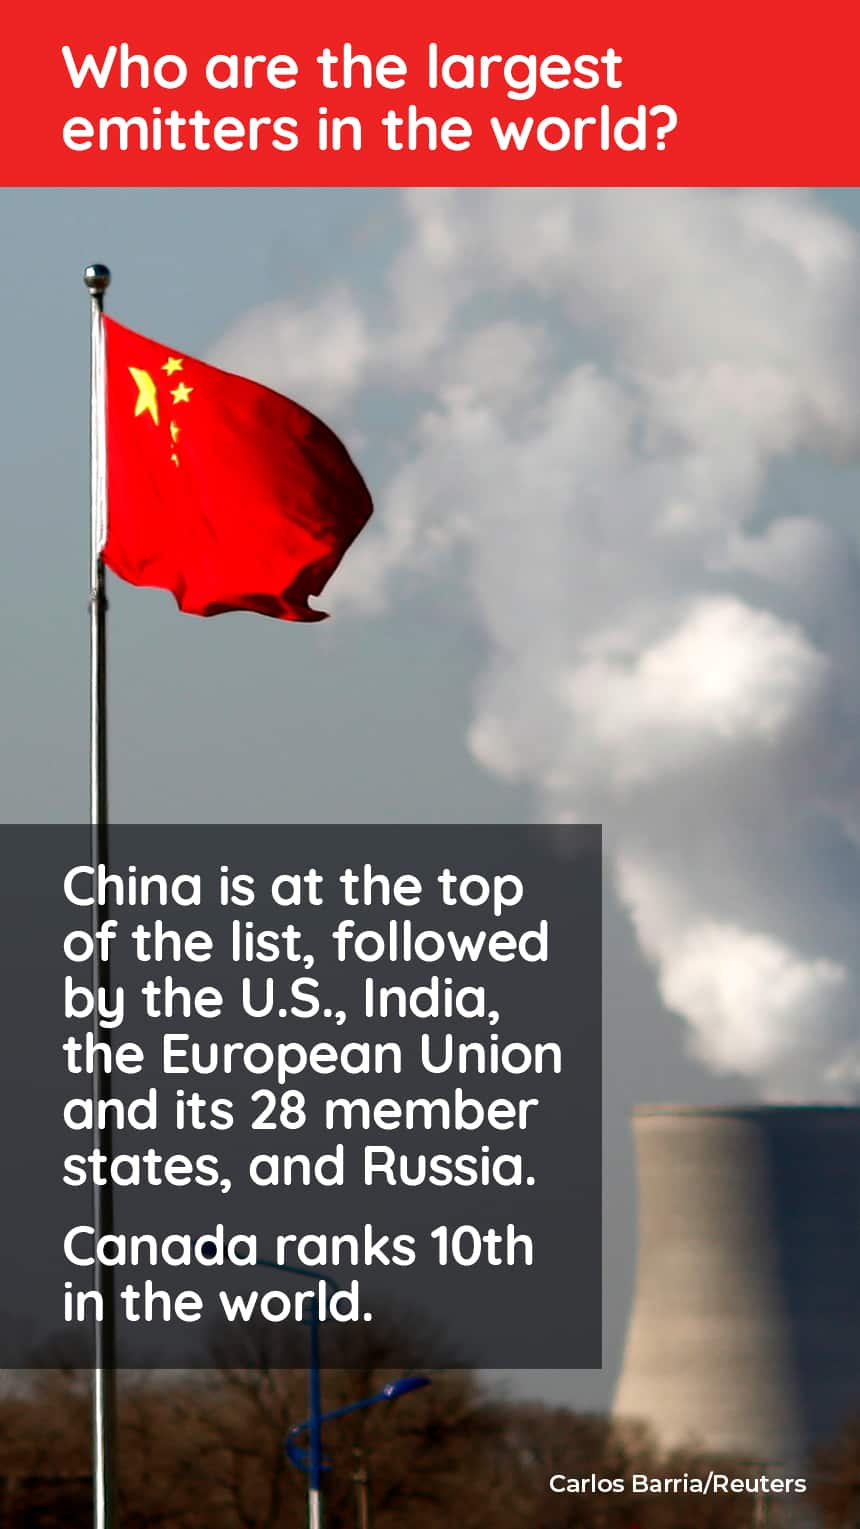 IMAGE: Chinese flag in front of smoke stacks. TEXT: How will U.S. exit affect global climate action?  Who are the largest emitters in the world? China is at the top of the list, followed by the U.S., India, the European Union and its 28 member states, and Russia.  Canada ranks 10th in the world.